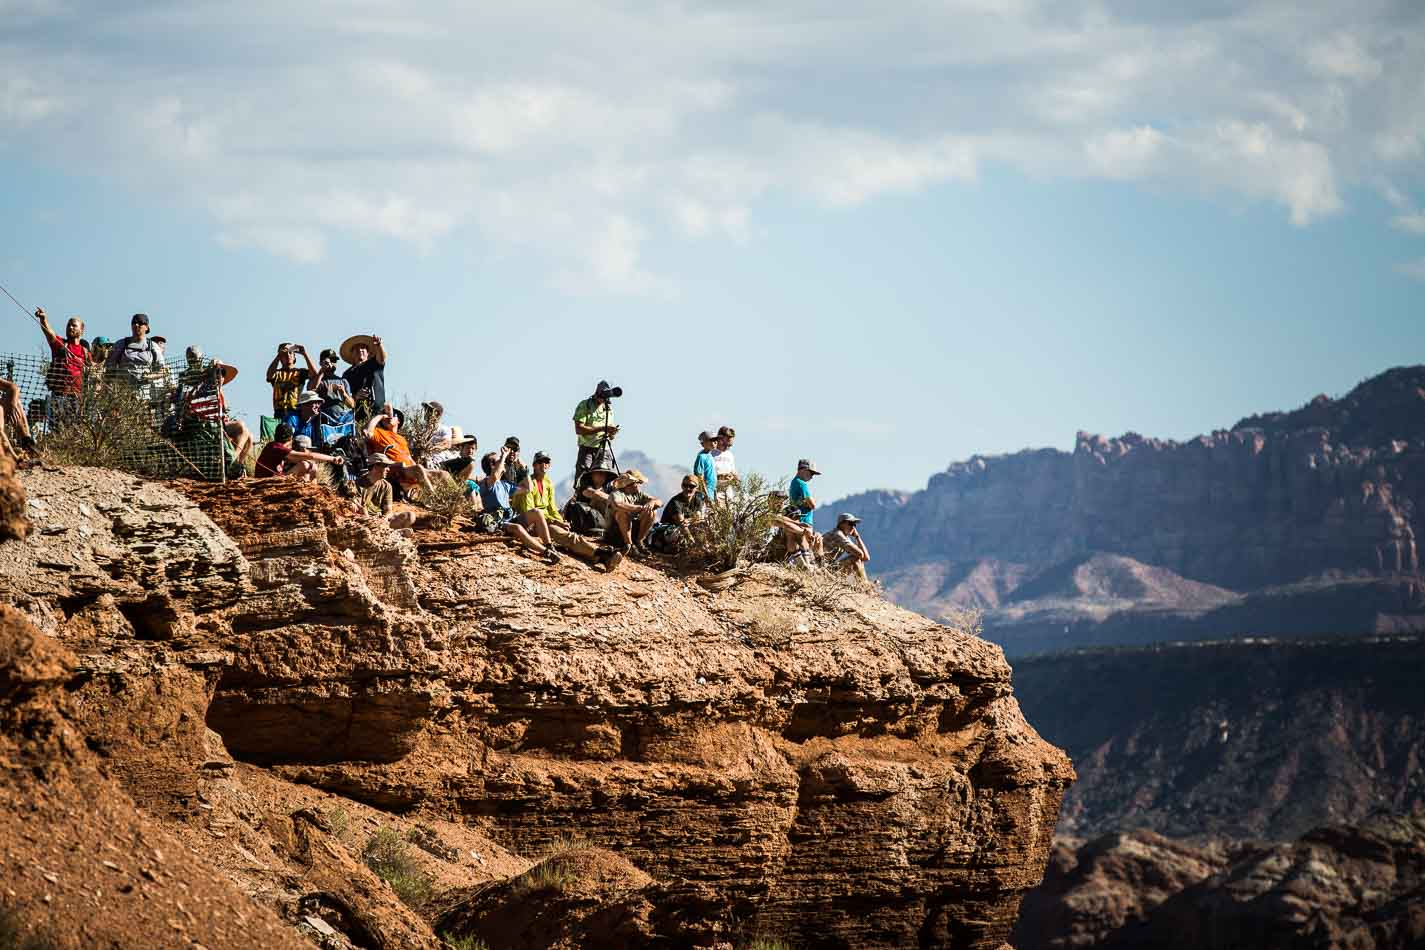 """The fans, on the other hand, didn't give two shits about the wind, and chanted, """"Rampage, Rampage"""" as they chugged their morning lagers and watched the world's sickest riders throw down their best in the world's gnarliest big-mountain contest."""